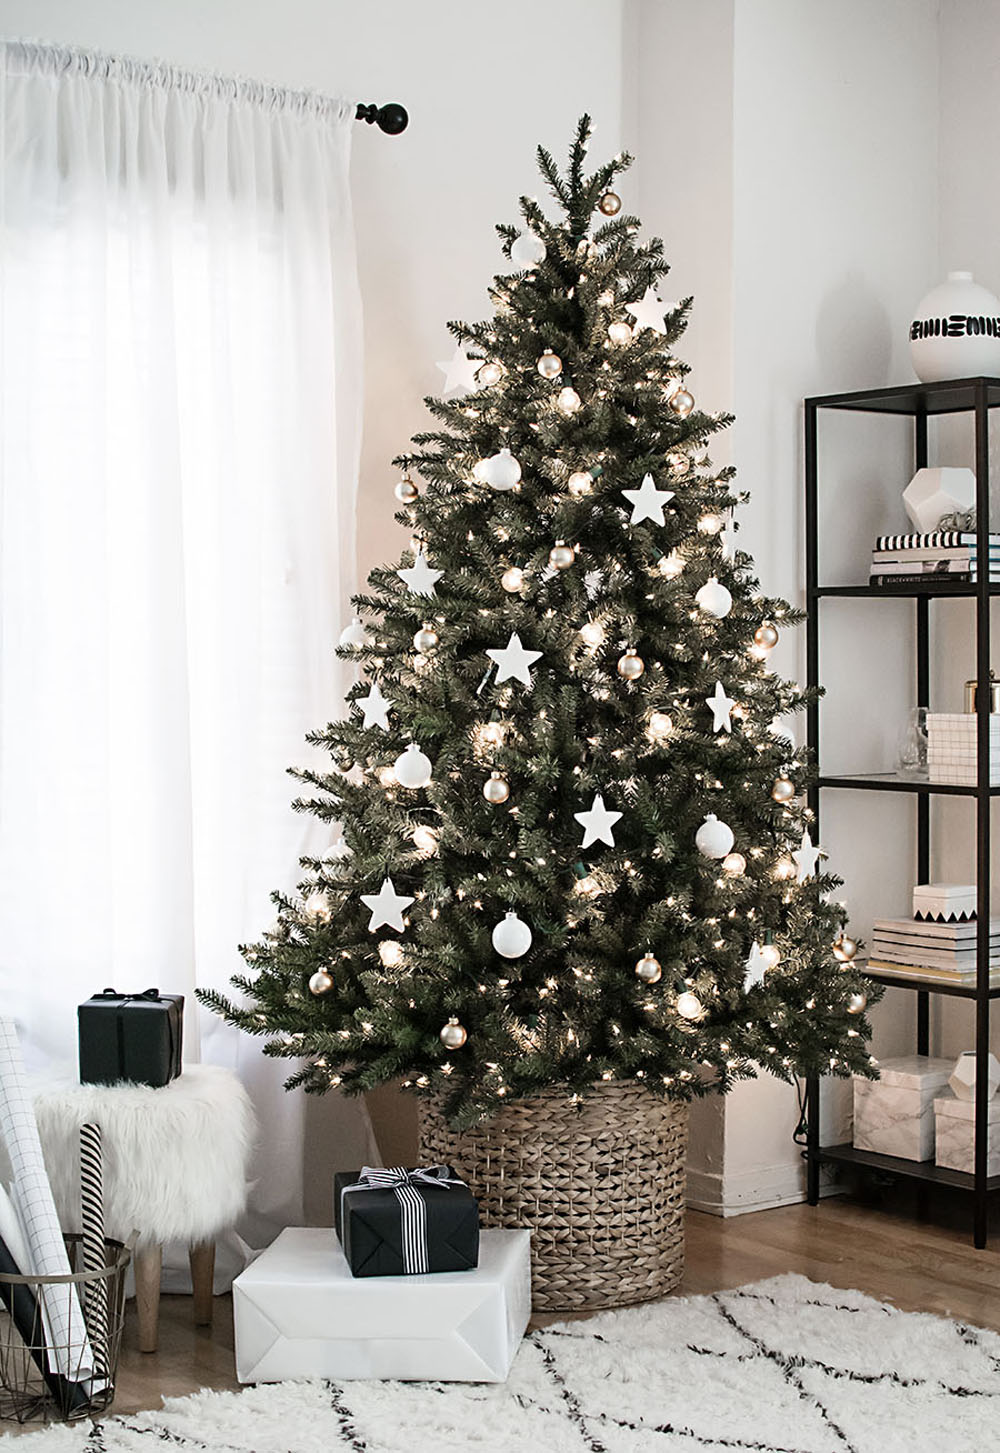 How To Make Your Christmas Living Room Decor Look Like A Million Bucks_1 christmas living room decor How To Make Your Christmas Living Room Decor Look Like A Million Bucks How To Make Your Christmas Living Room Decor Look Like A Million Bucks 2